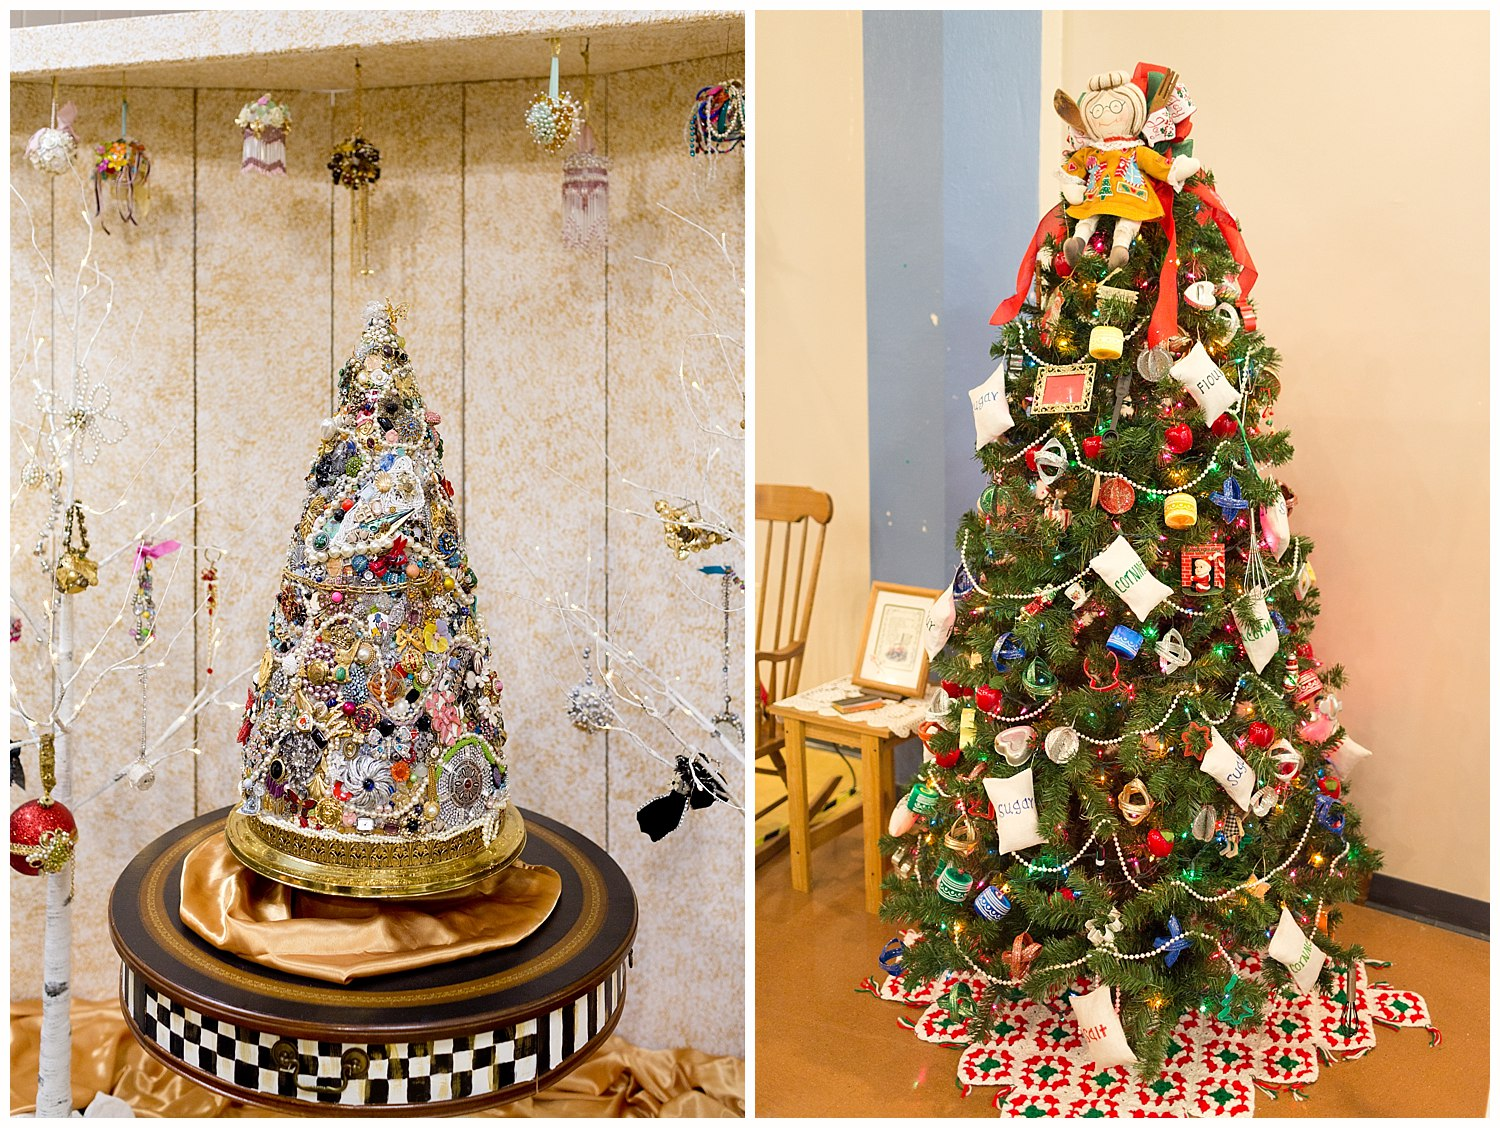 Christmas trees at Highlands Museum in Ashland, KY